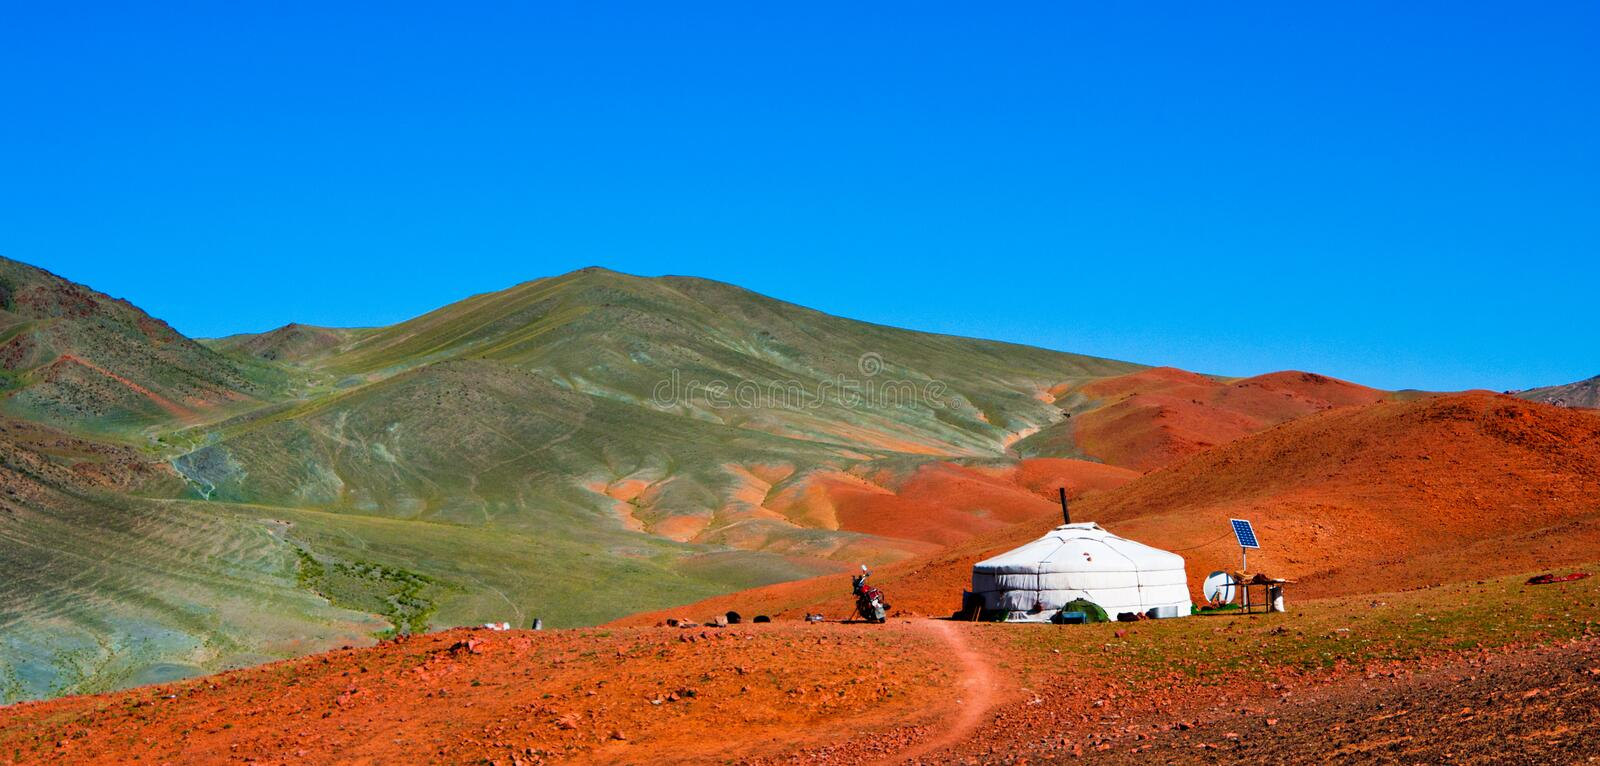 Mongolian yurt in the mountains. Traditional mongolian yurt (ger) in the Mongolian Altai mountains: lifeless soil, red stony ground, blue sky stock photography